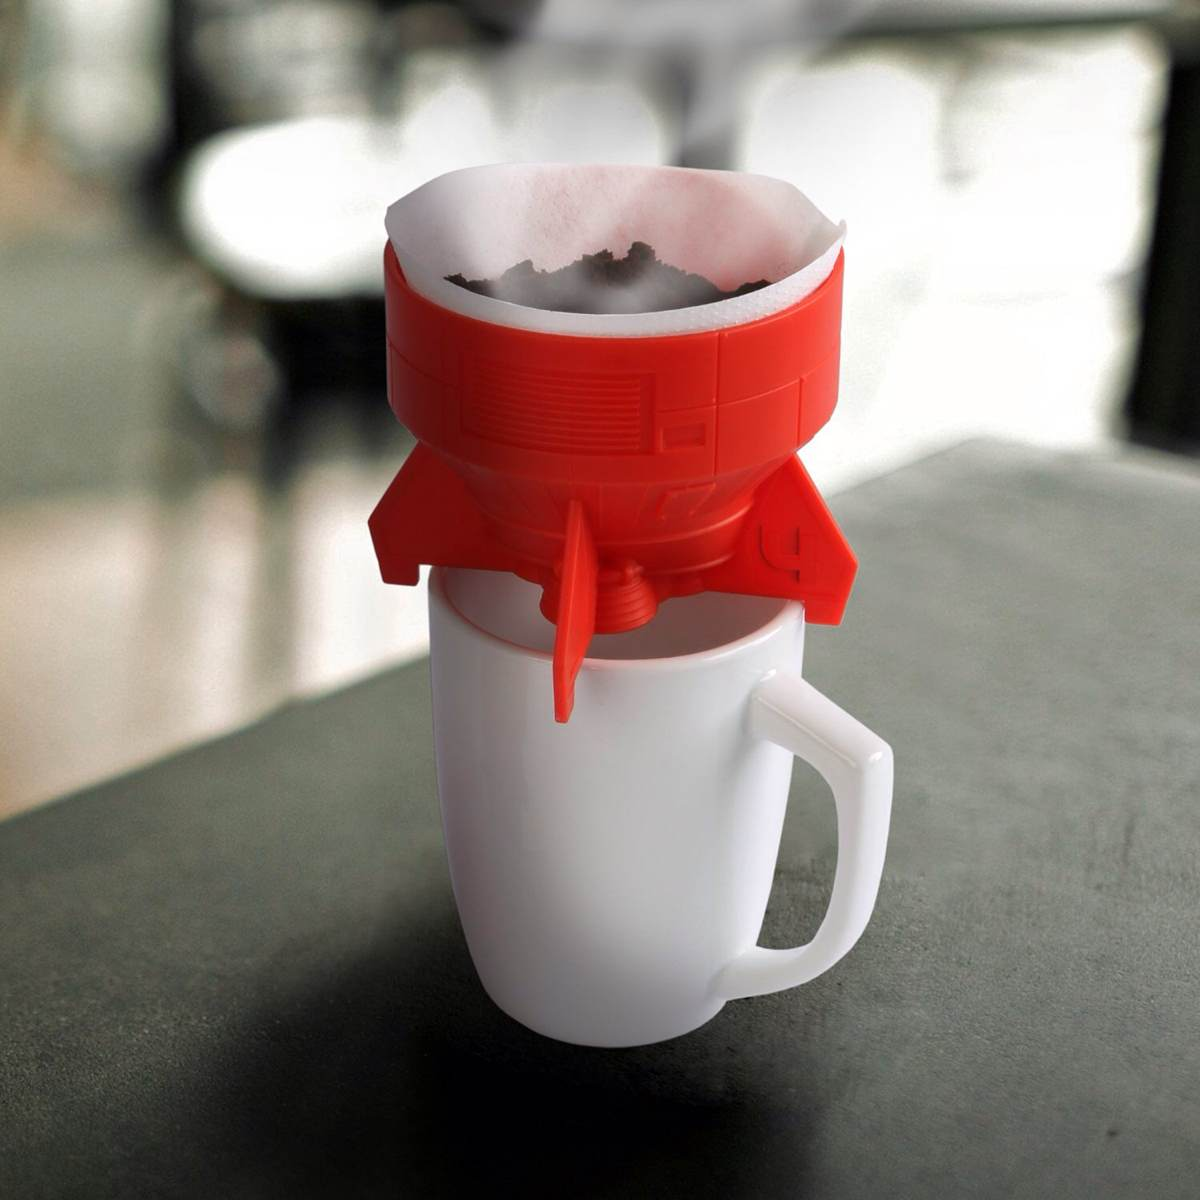 Rocket Fuel Pour-Over Coffee Drip